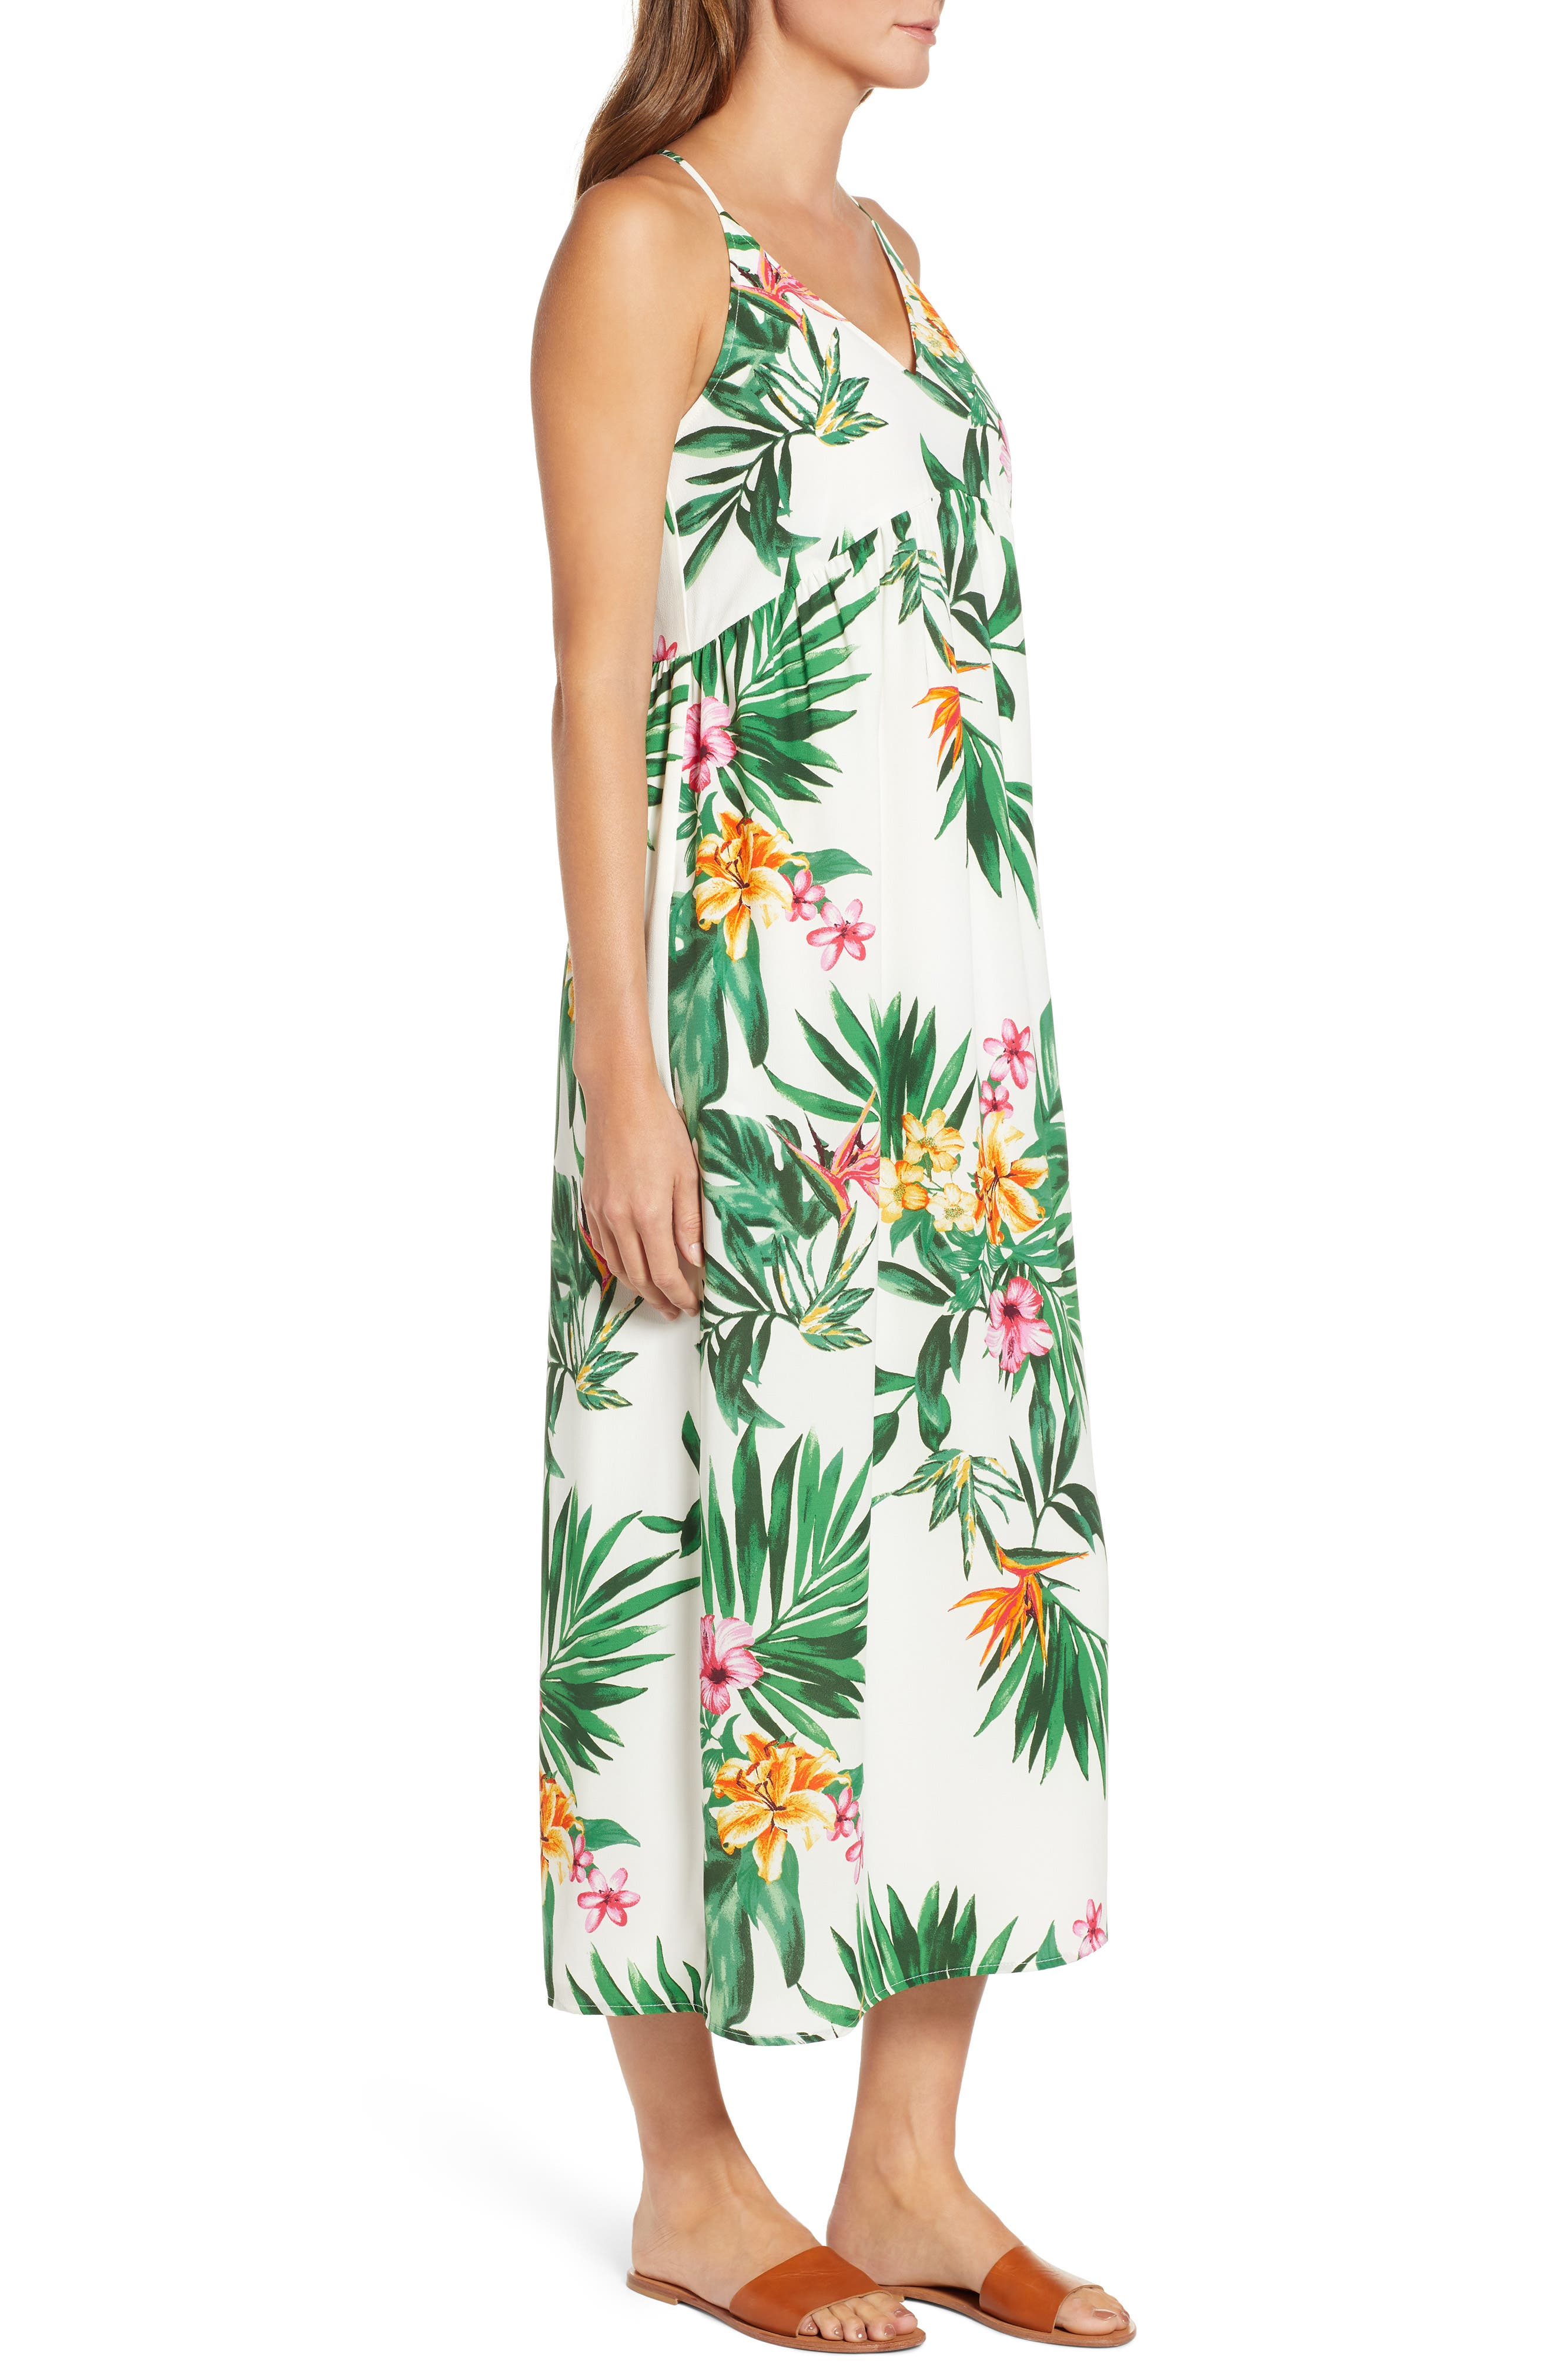 x Hi Sugarplum! Palm Springs Festival Maxi Dress,                             Alternate thumbnail 3, color,                             150